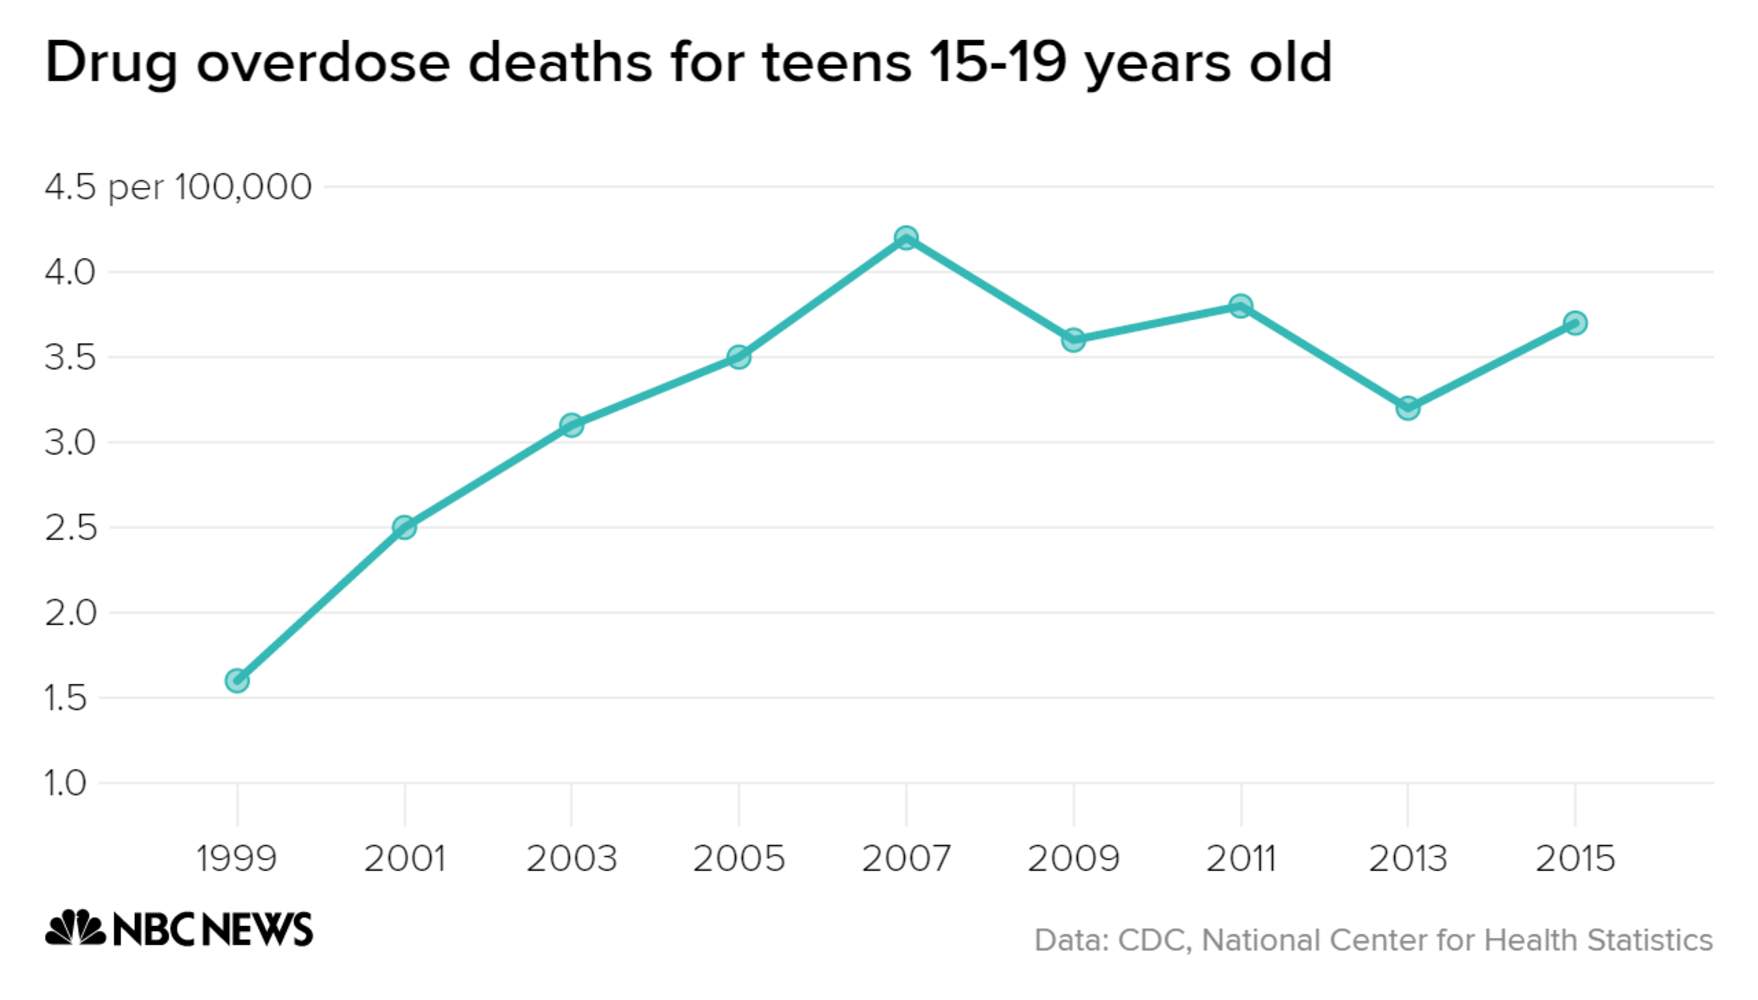 Heroin, fentanyl contribute to sharp rise in teen overdose deaths